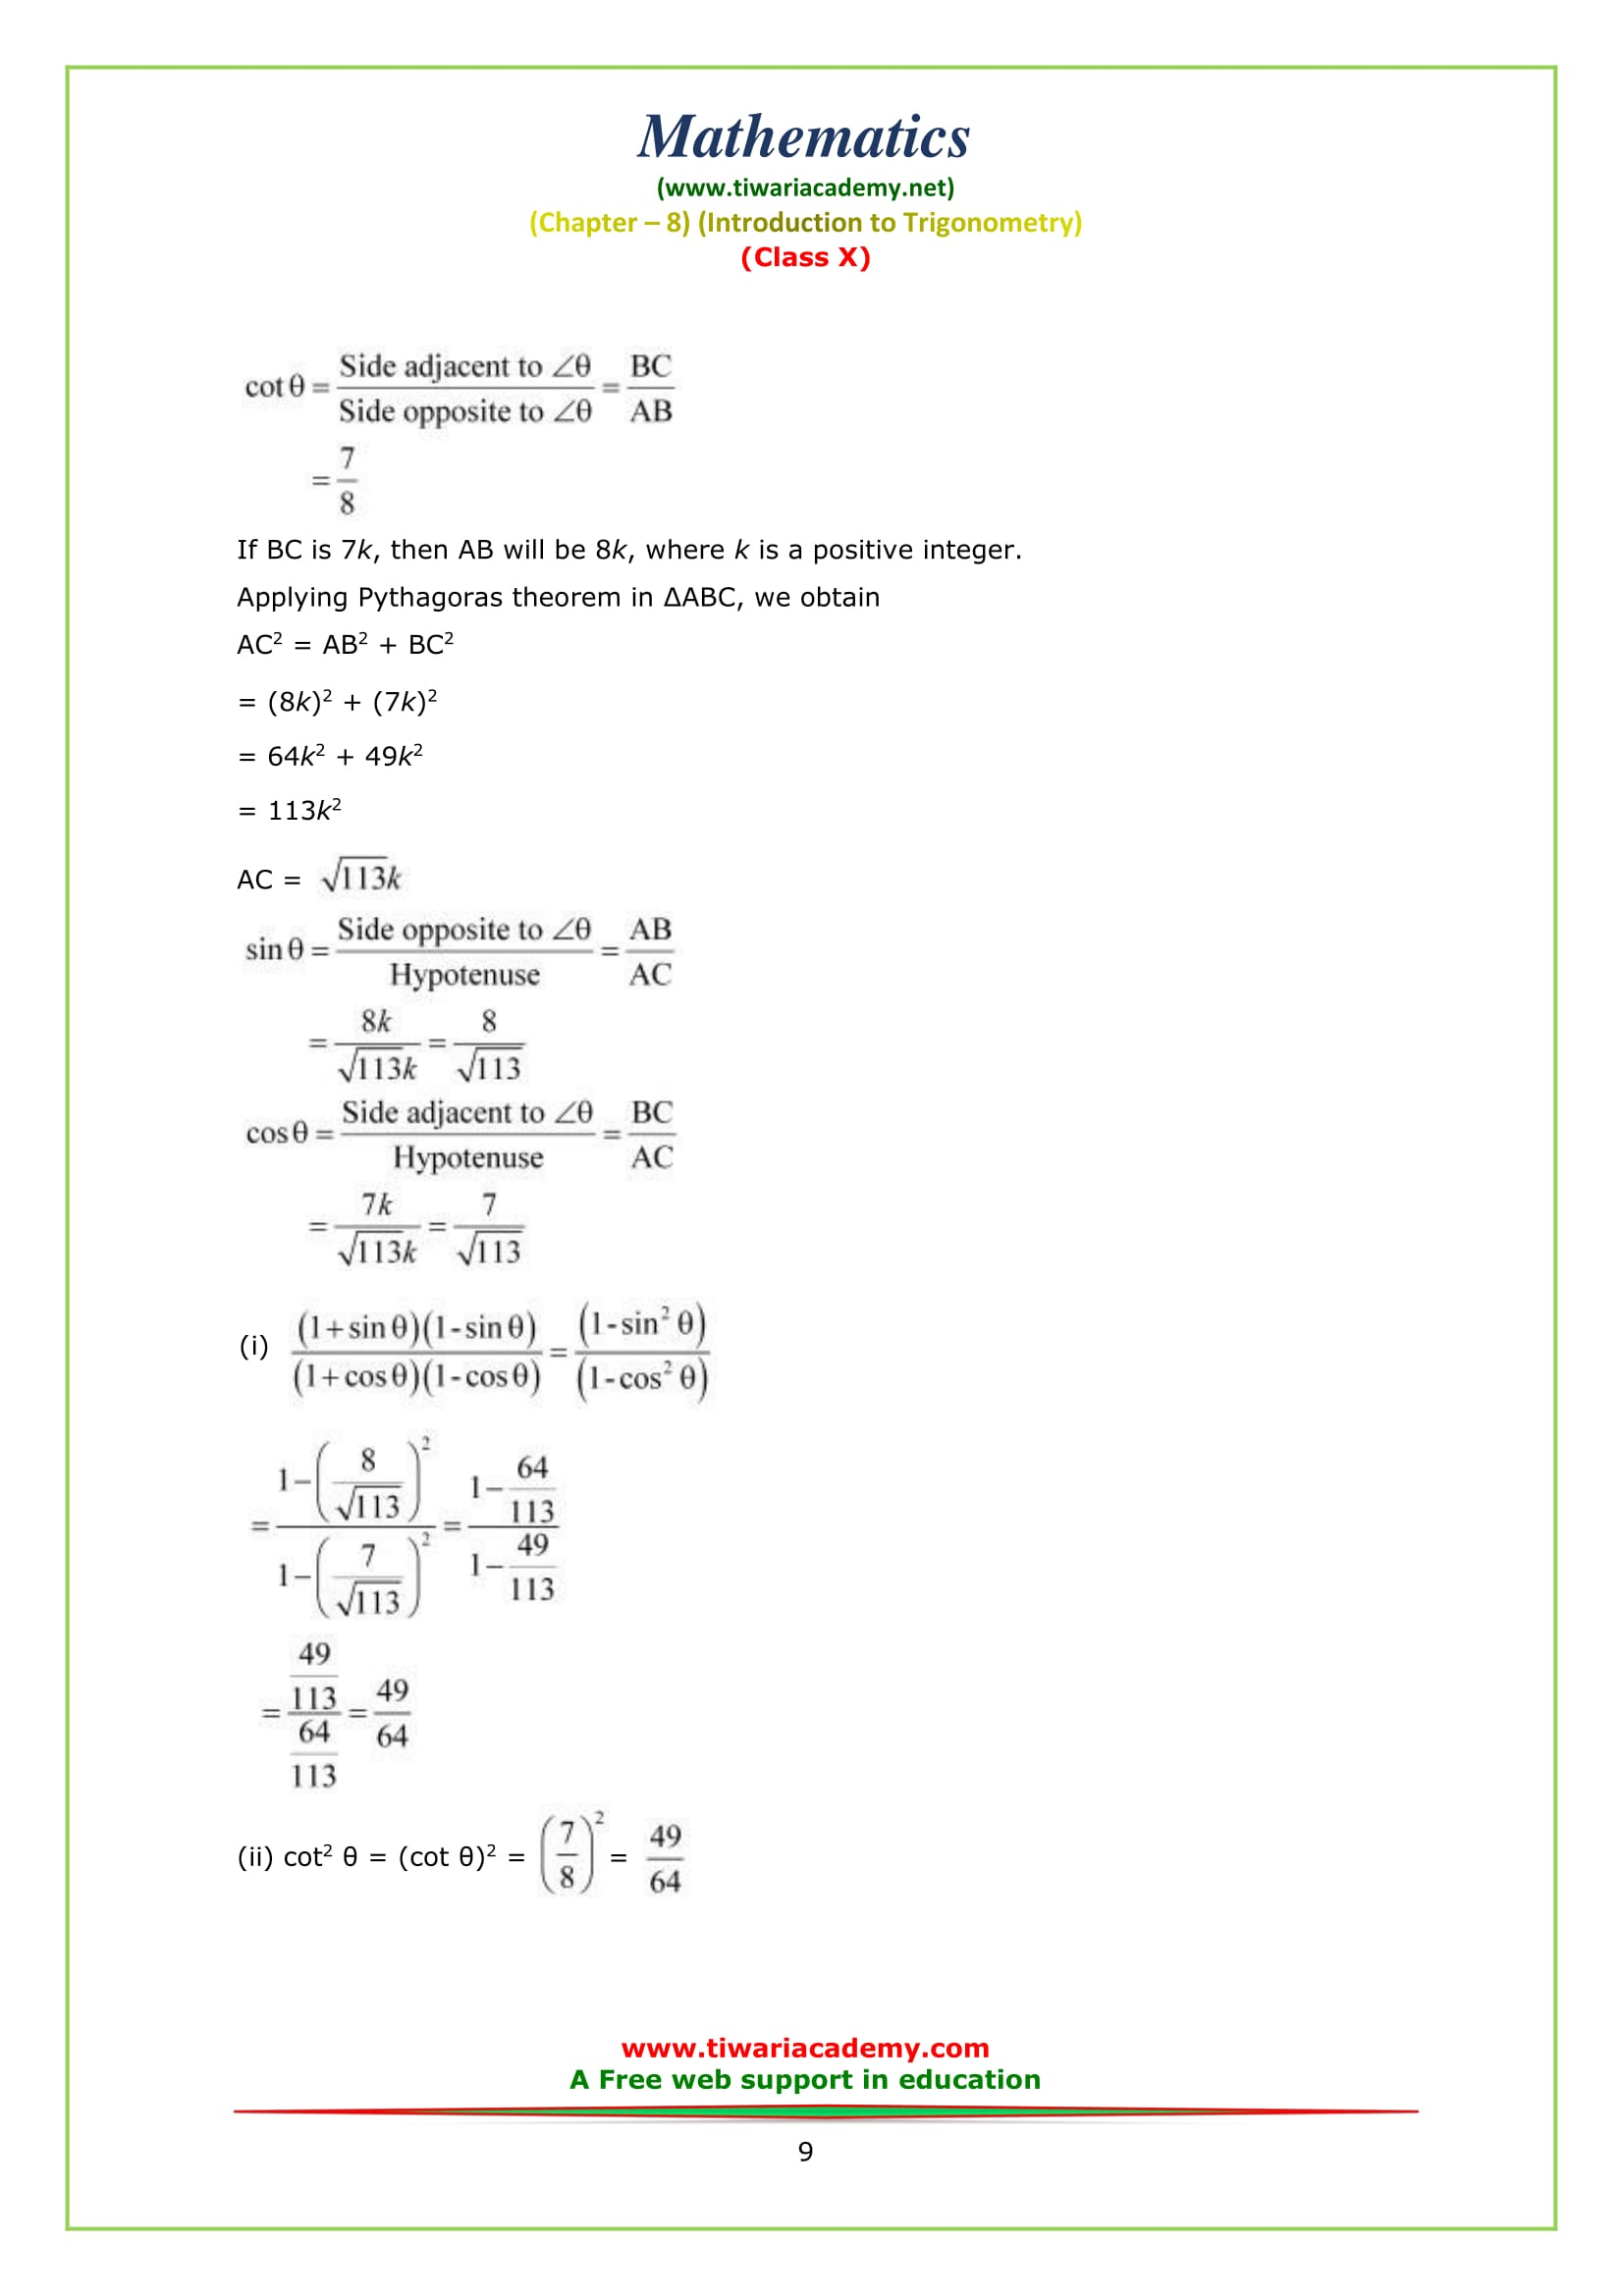 NCERT Solutions for Class 10 Maths Chapter 8 Exercise 8.1 Question 7 answers